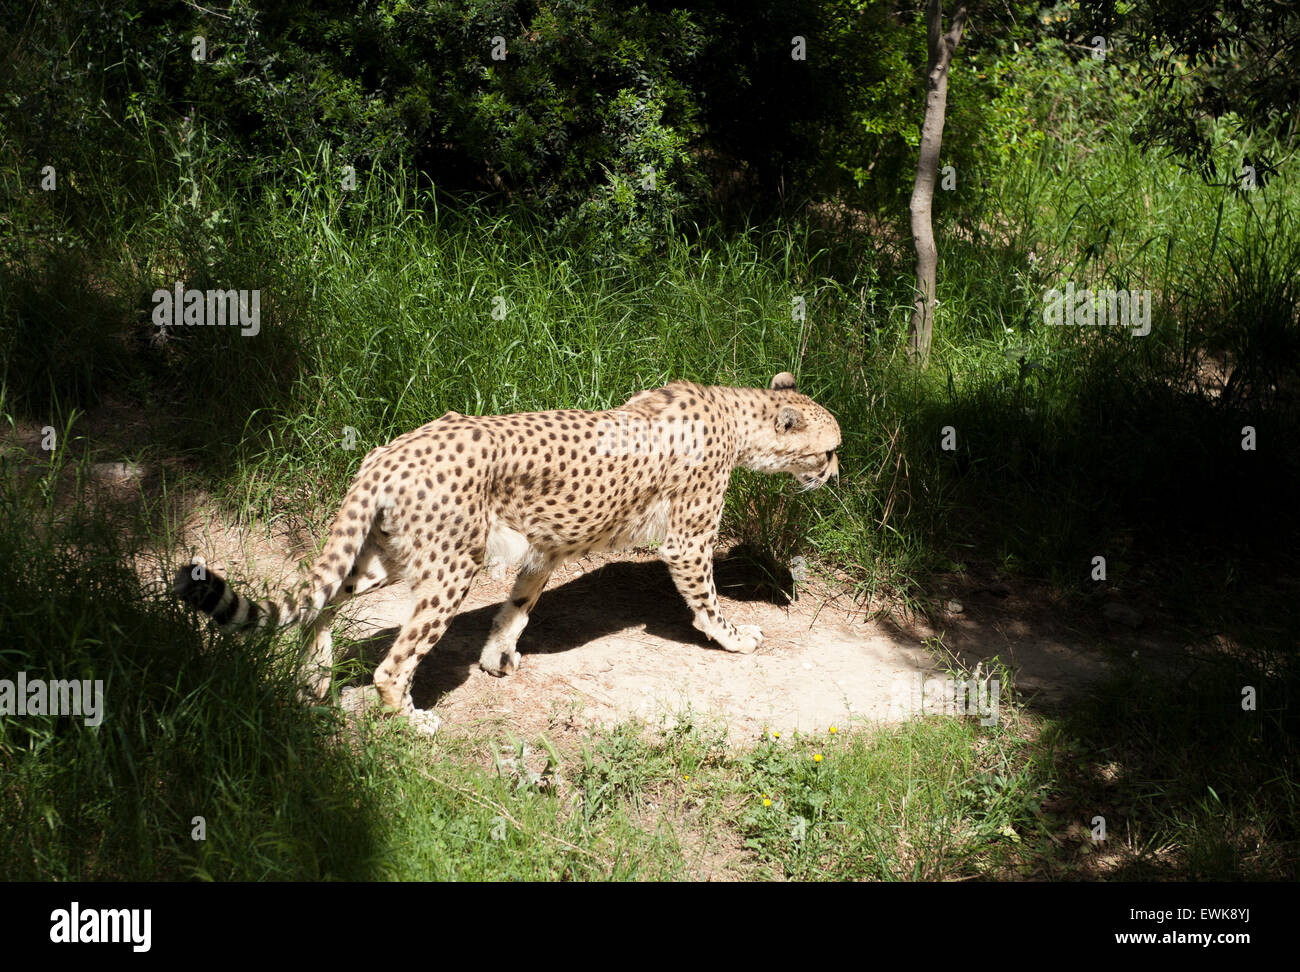 A Cheetah In Captivity At The Reserve Africaine De Sigean In Stock Photo Alamy